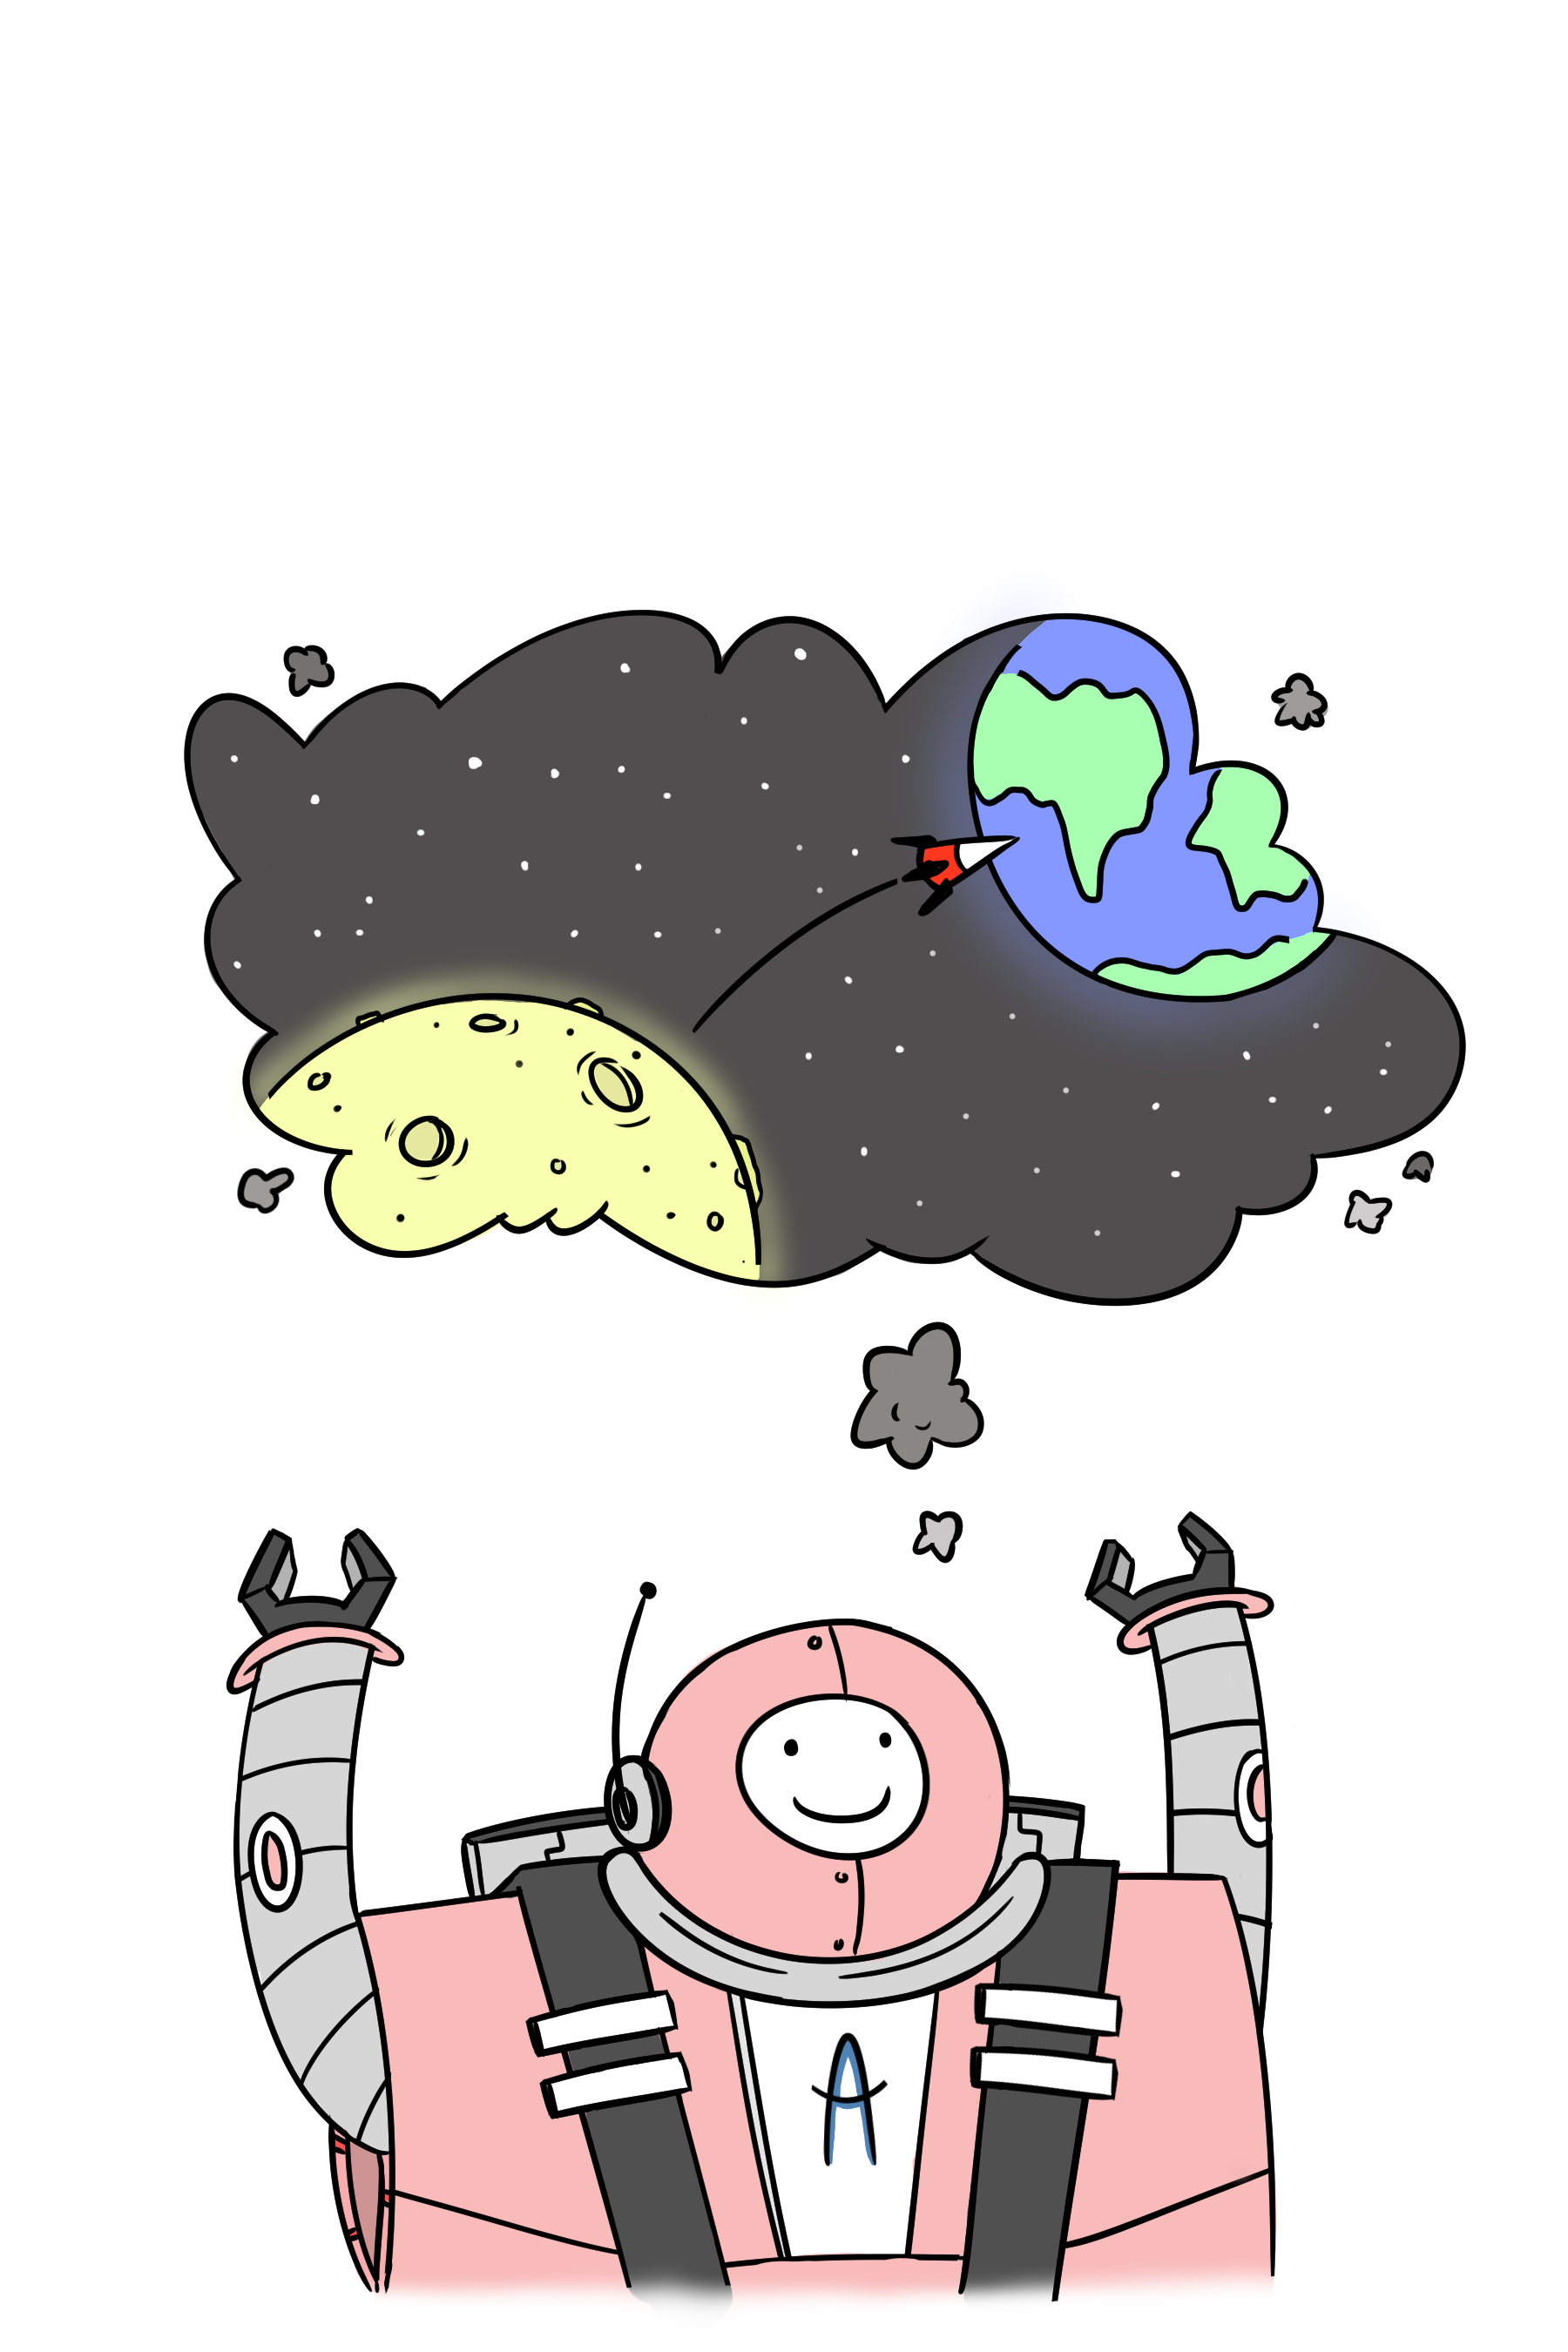 Animated robot dreams of going to space